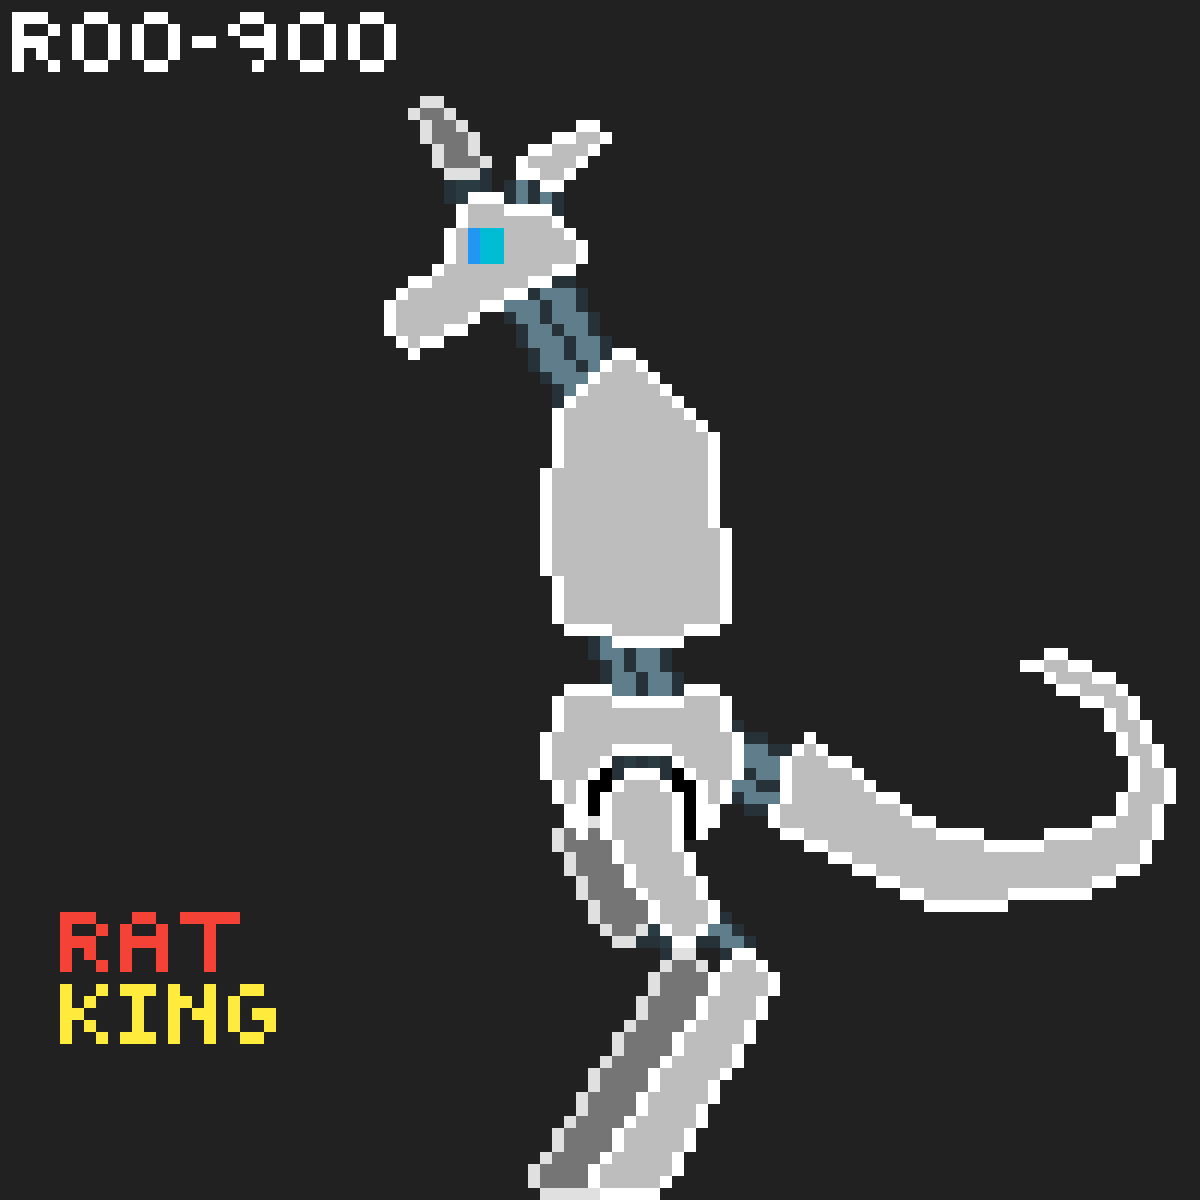 Roo-900 by Rat-King